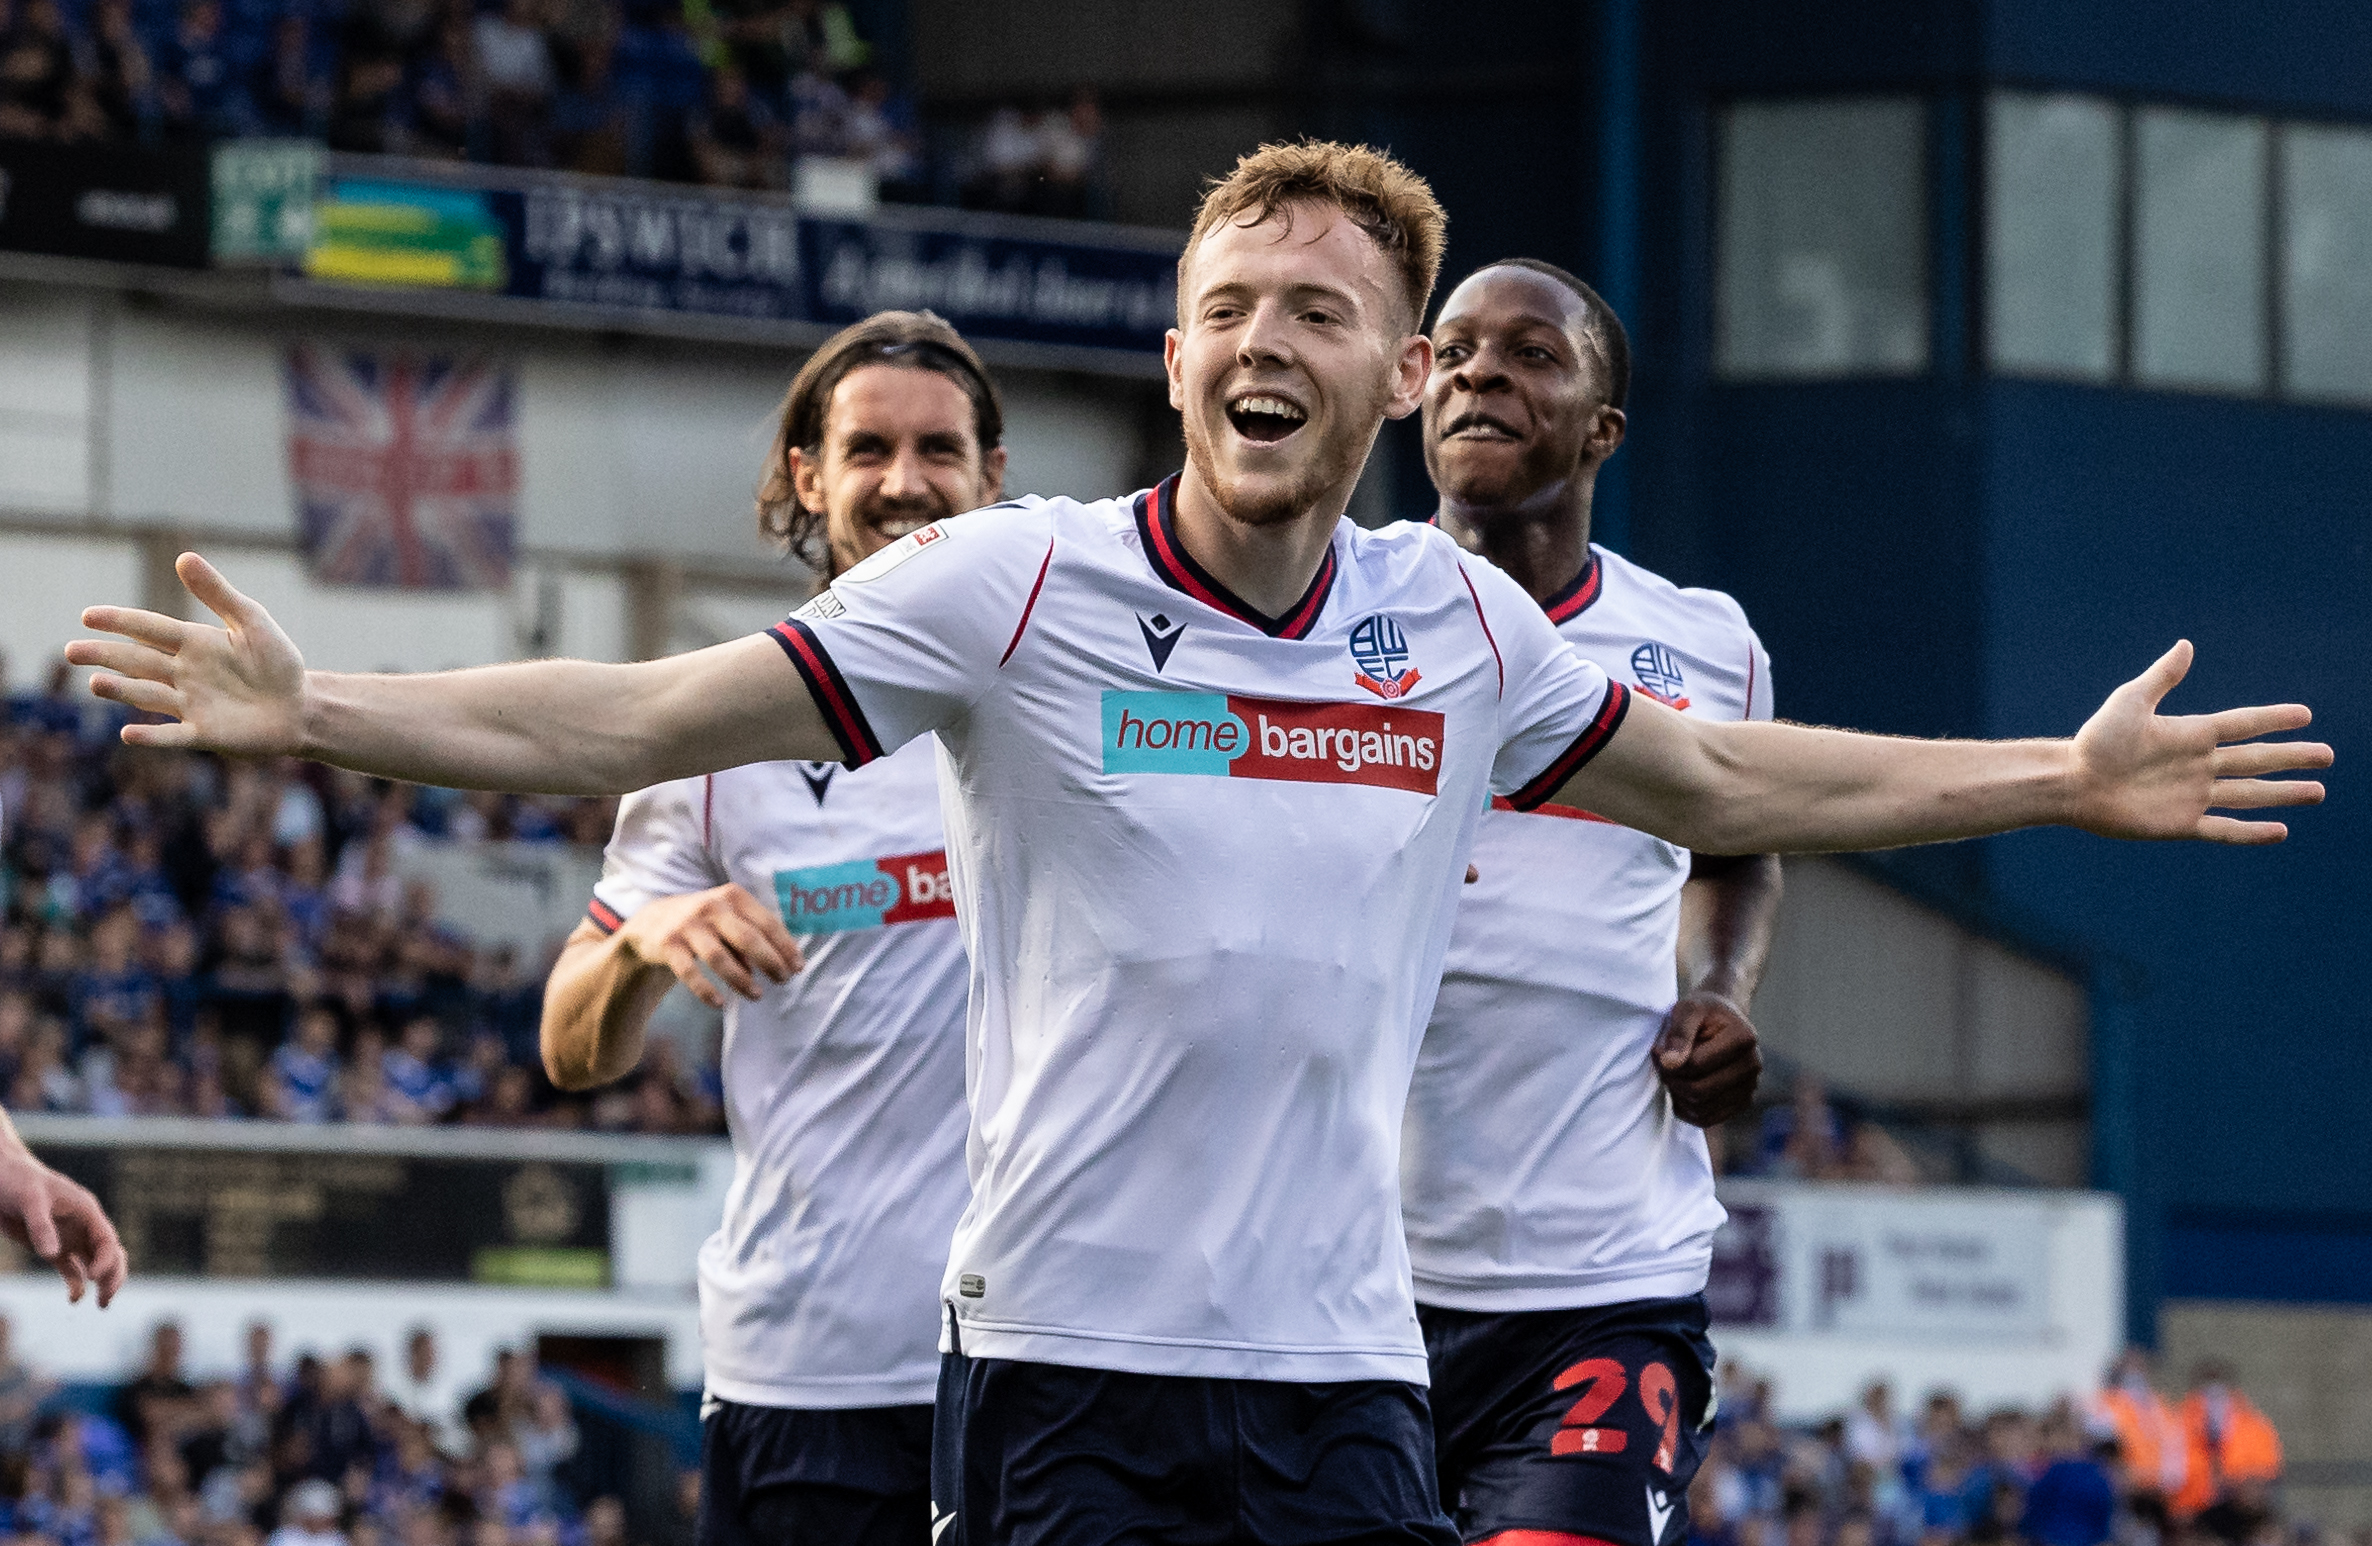 Bolton Wanderers defender George Johnston can't wait to face Wigan Athletic